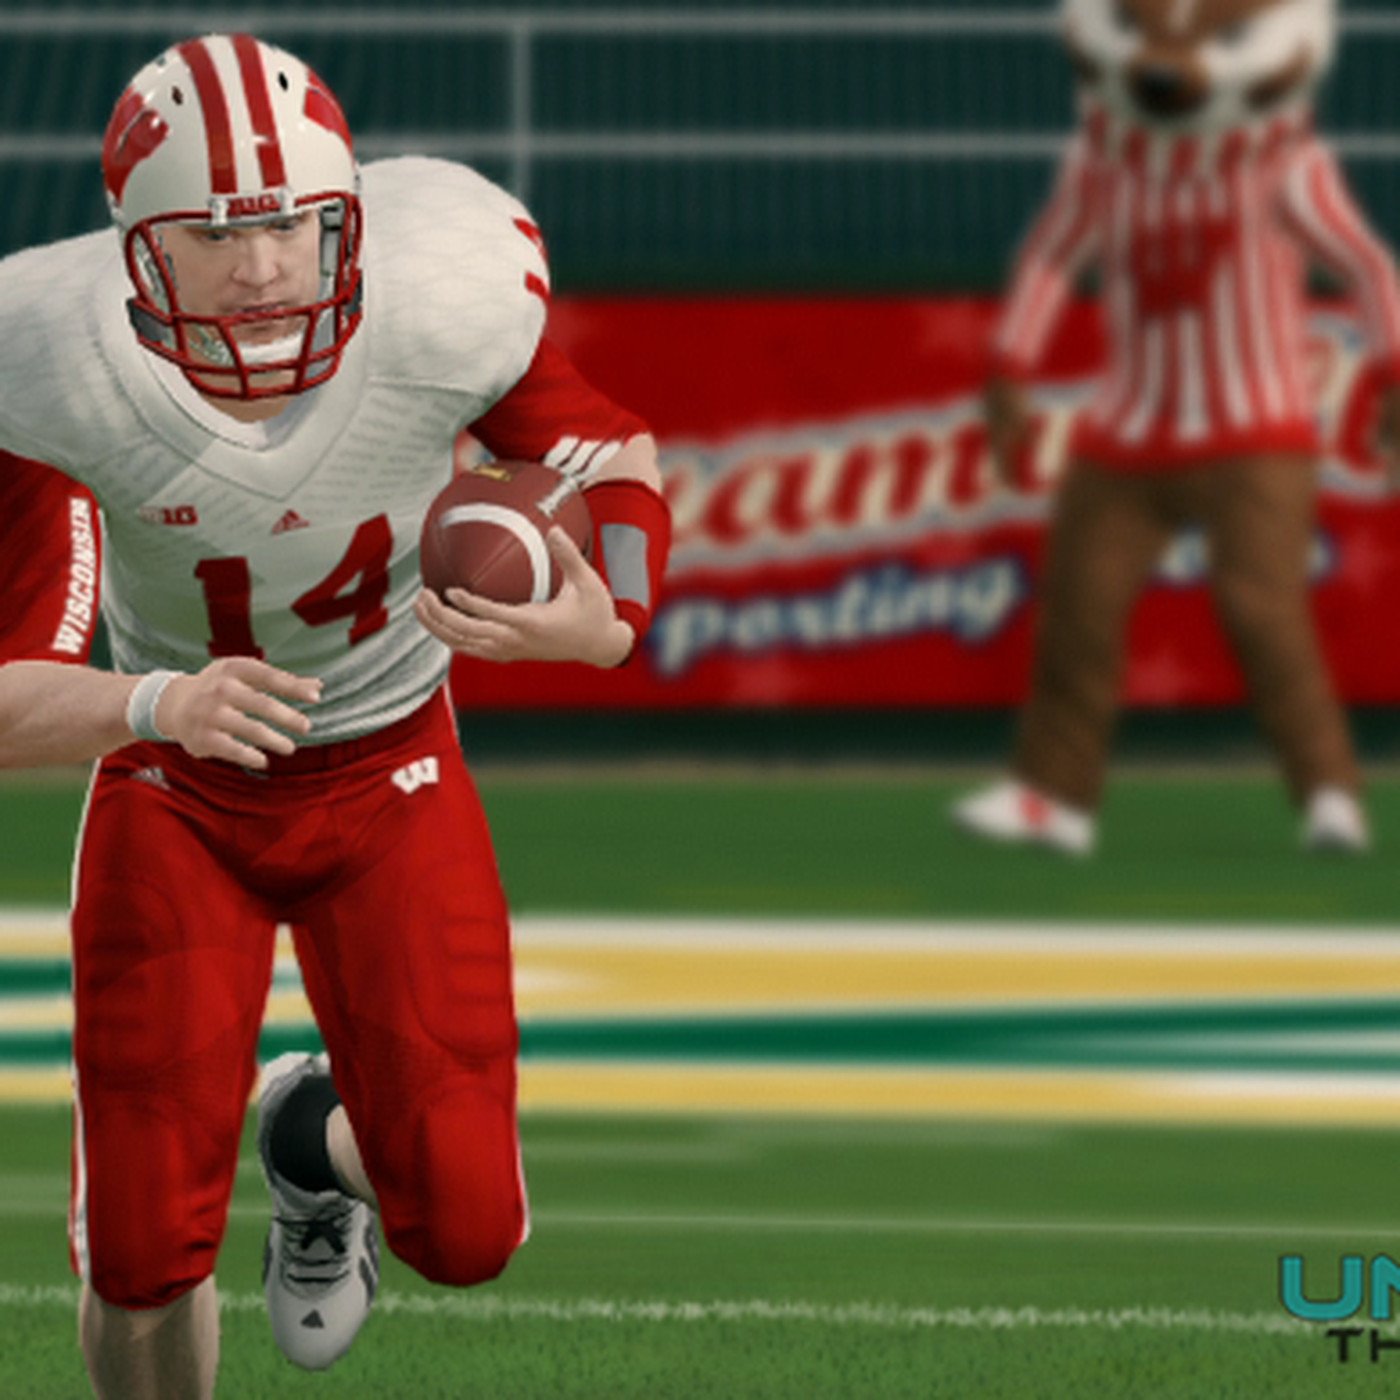 New Wisconsin uniform features maybe 3df35ed88